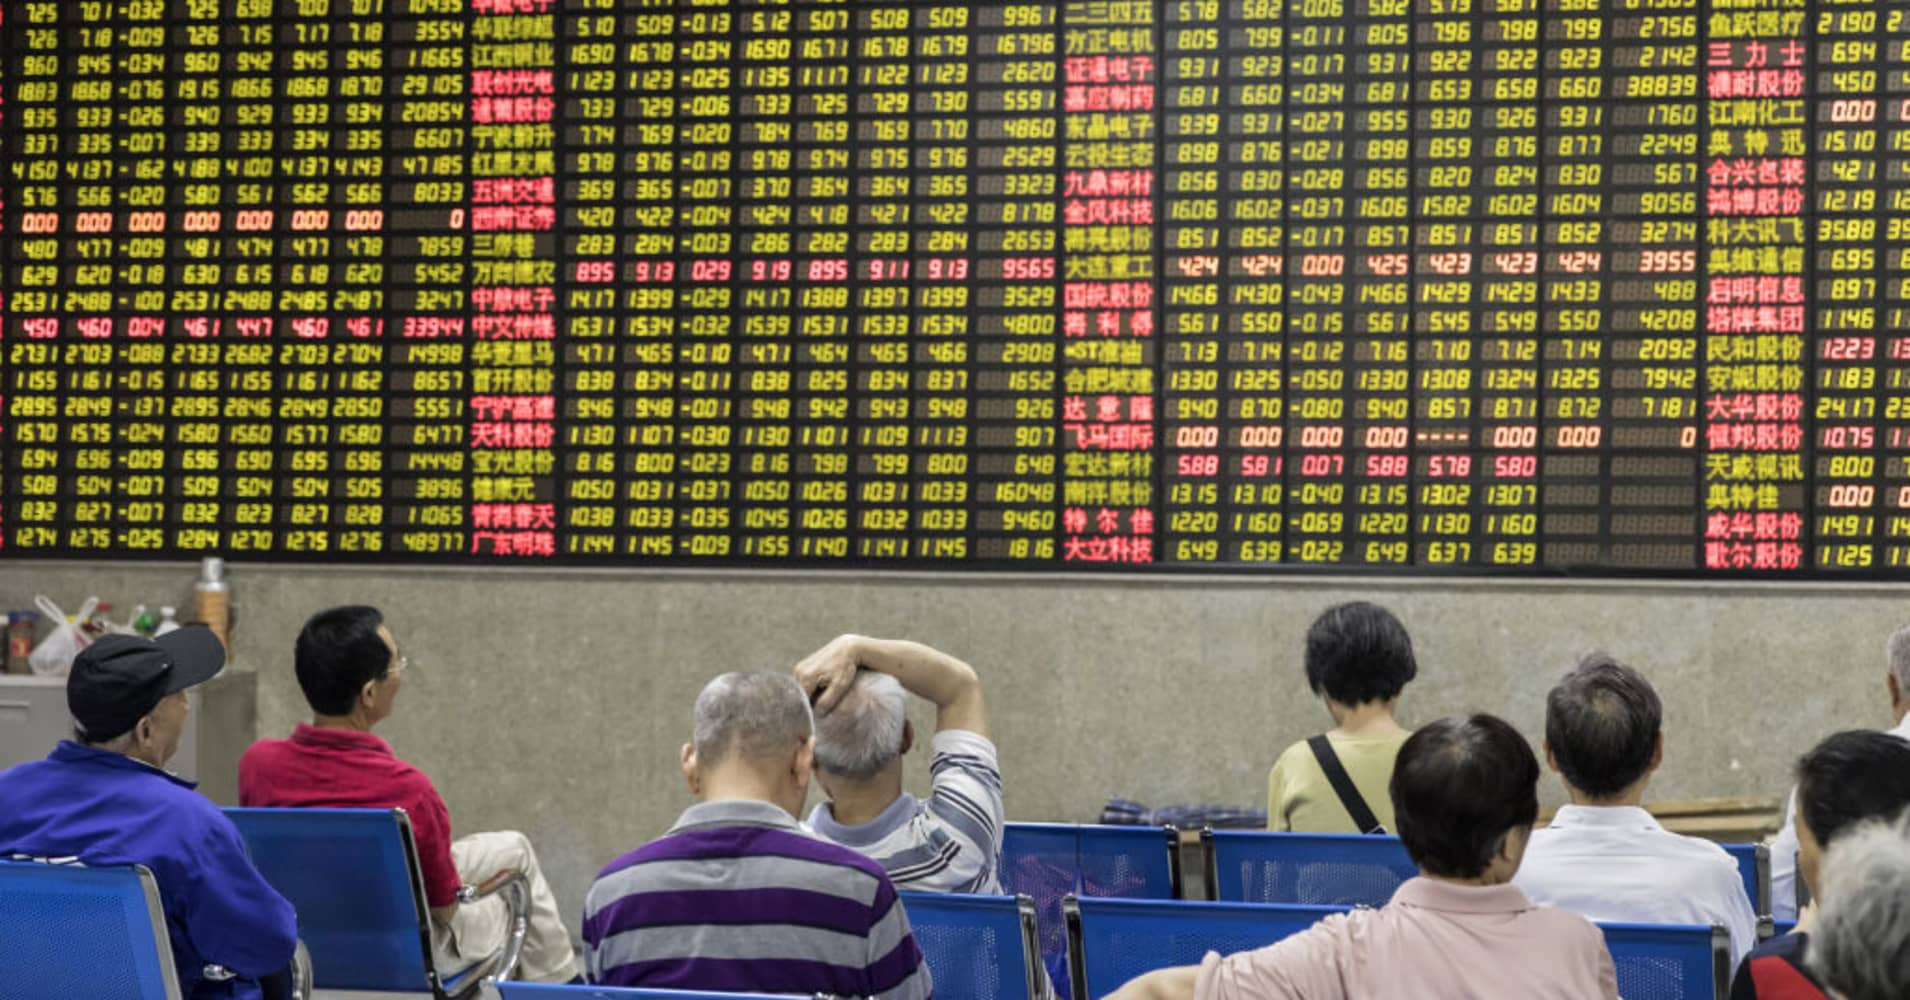 China A-shares make MSCI debut: What analysts are saying